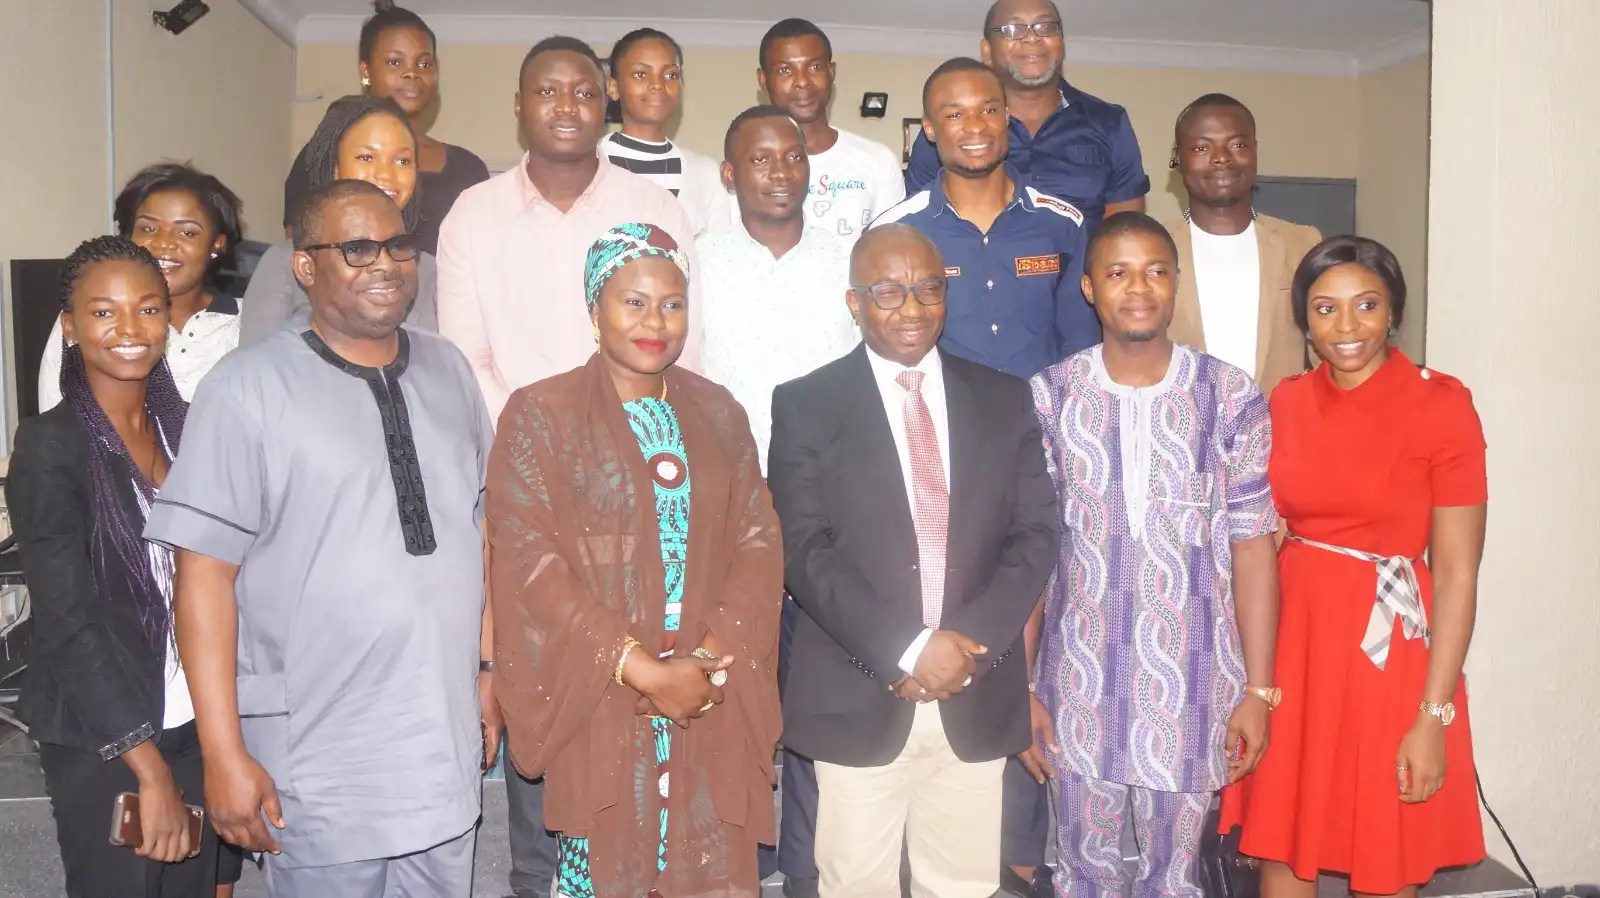 Cross section of the online media and bloggers with the Director General of NITDA, Dr. Vincent Olatunji at KML office, Oregun, Ikeja, Lagos.